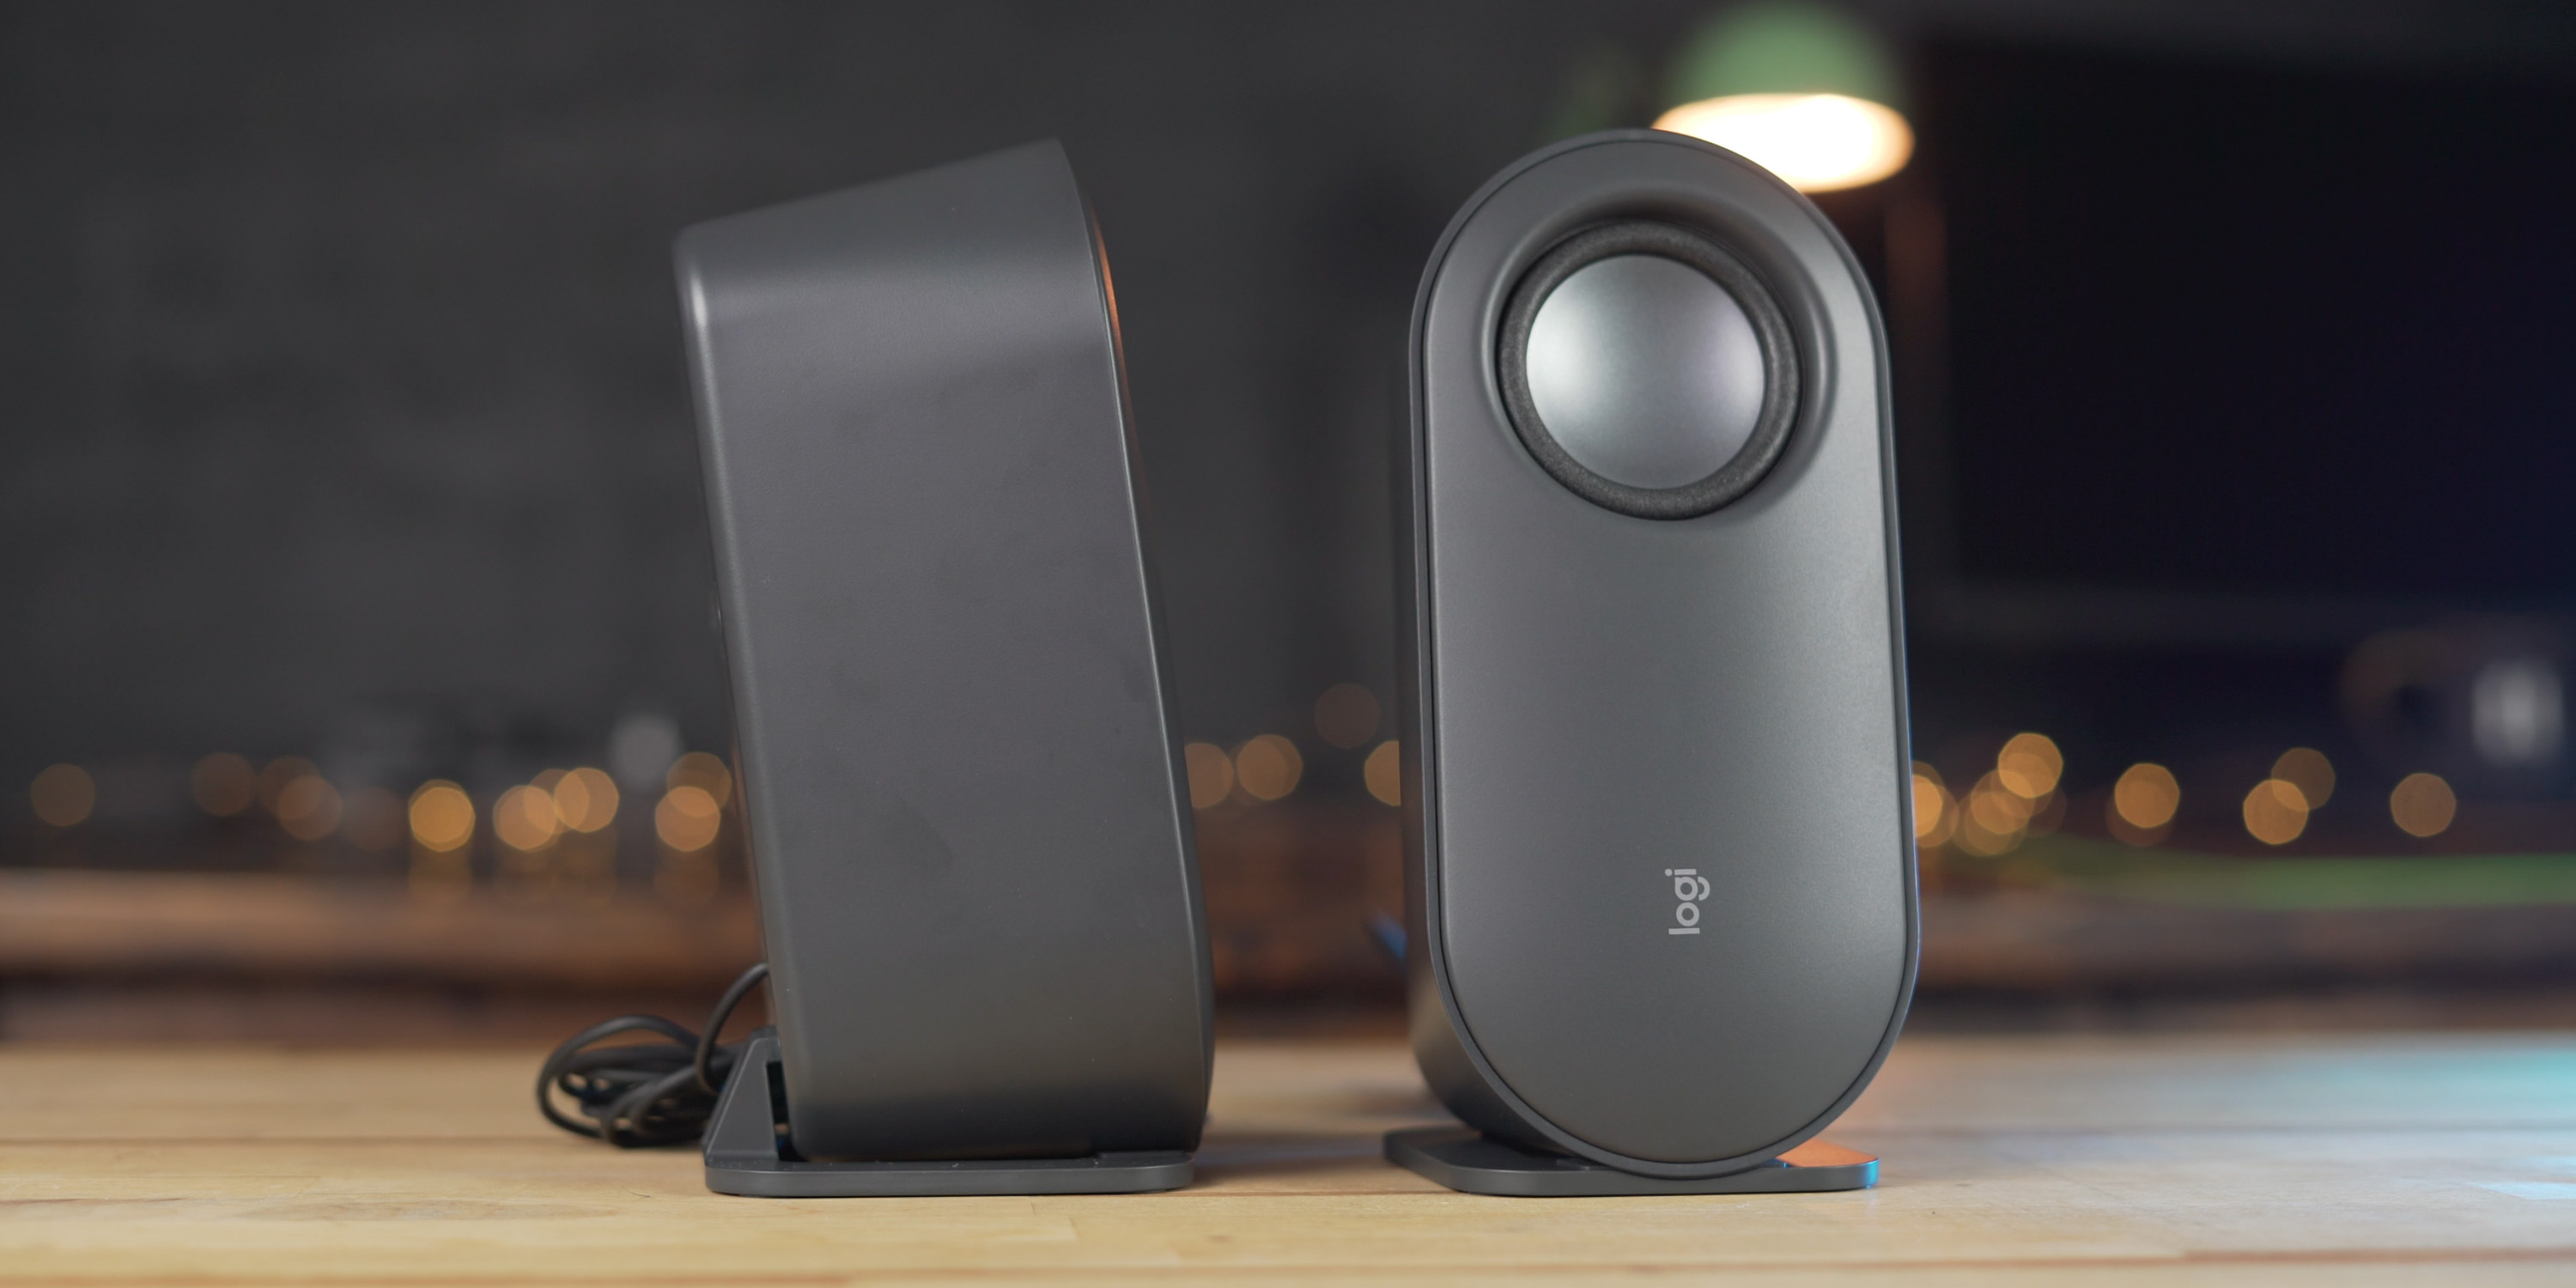 The satellite speakers are crisp and clear while the subwoofer adds plenty of low end